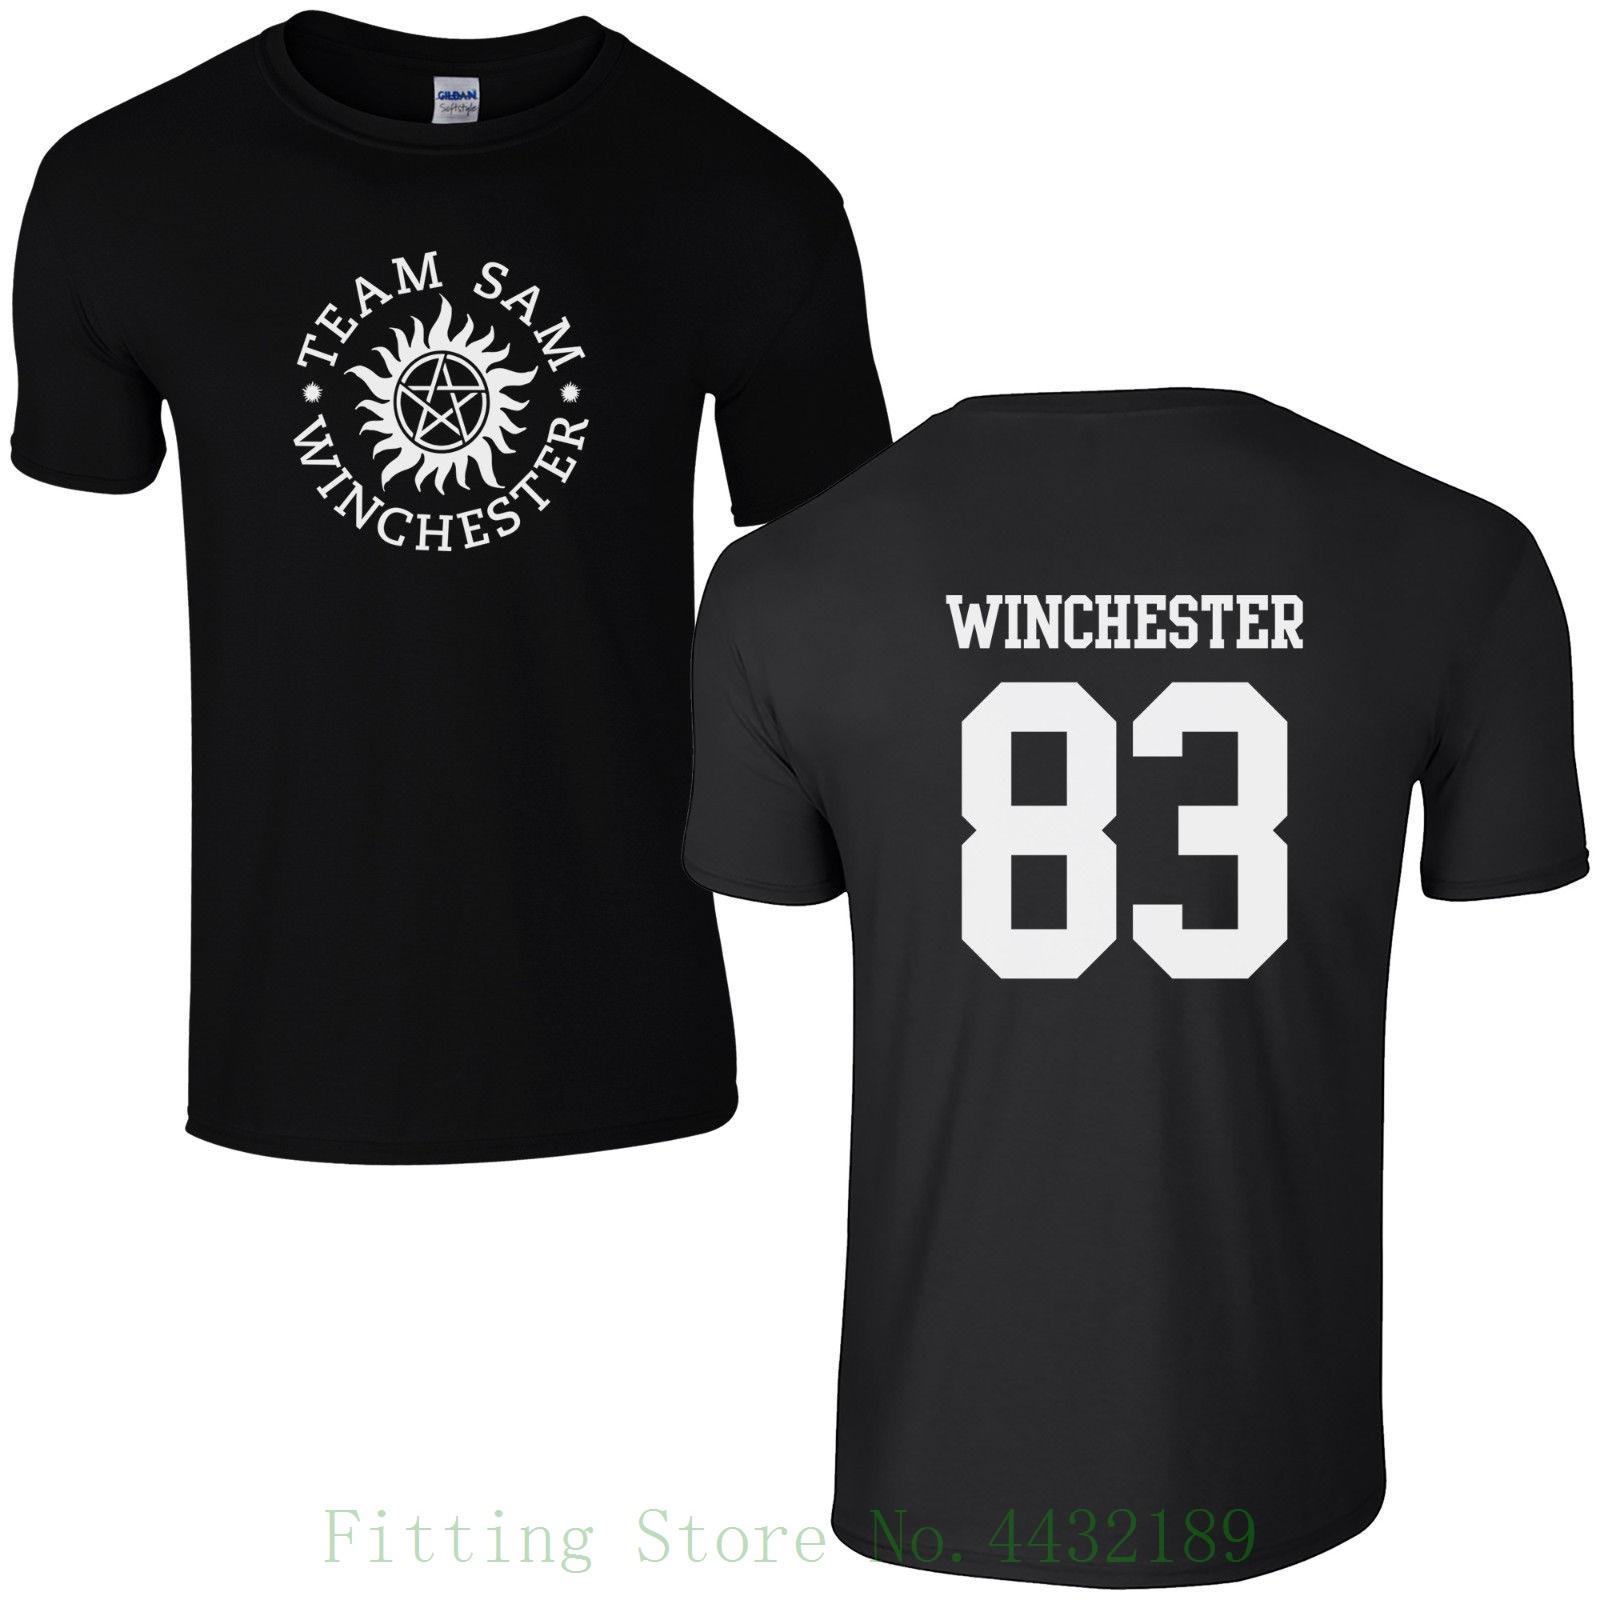 bc668716c Team Sam Winchester 83 T Shirt Supernatural Saving People Hunter Things Top  Pop Cotton Man Tee Best T Shirts Design All T Shirt From Aaa888tshirts, ...